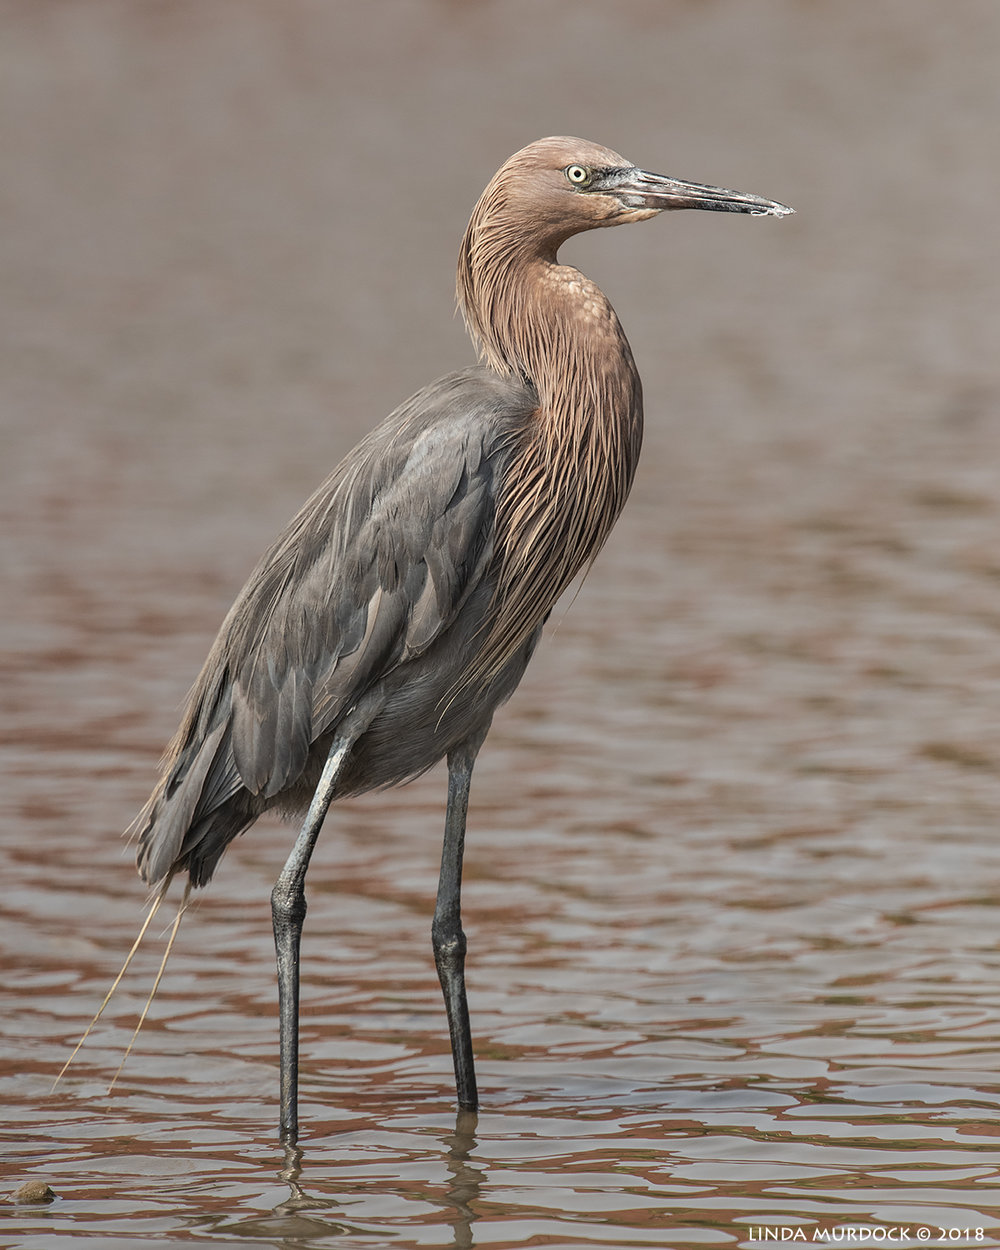 Boring photo of Reddish Egret standing still and doing nothing Nikon D810 with NIKKOR 500mm f/4E VR + Nikon 1.7x TC ~ 1/2000  sec f/8.0 ISO 800; braced in passenger window